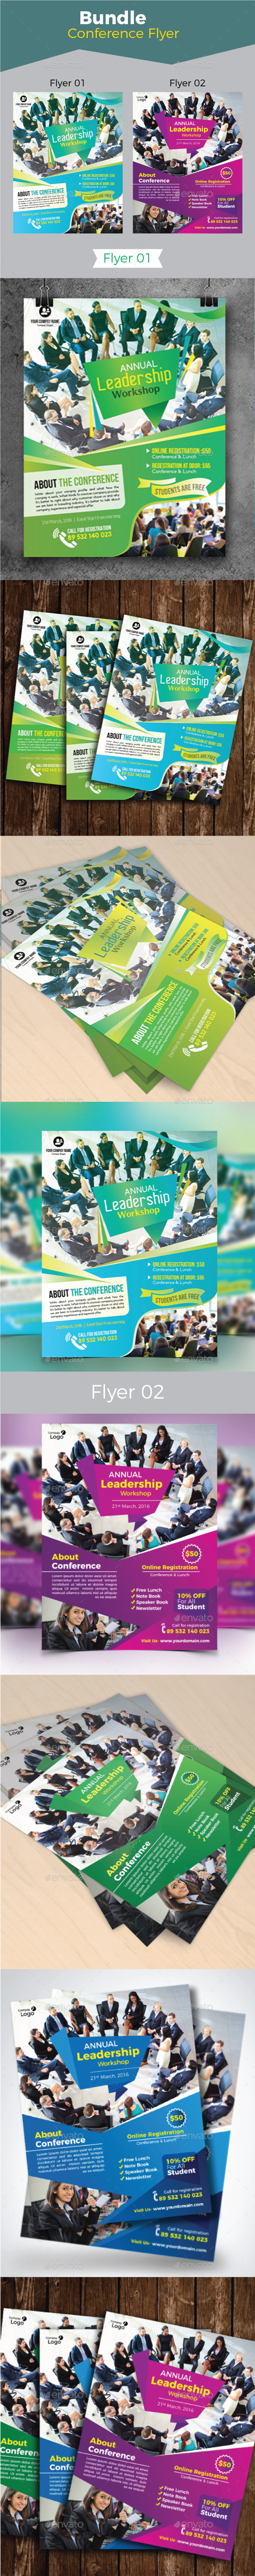 Conference Flyer Bundle - Corporate Flyers